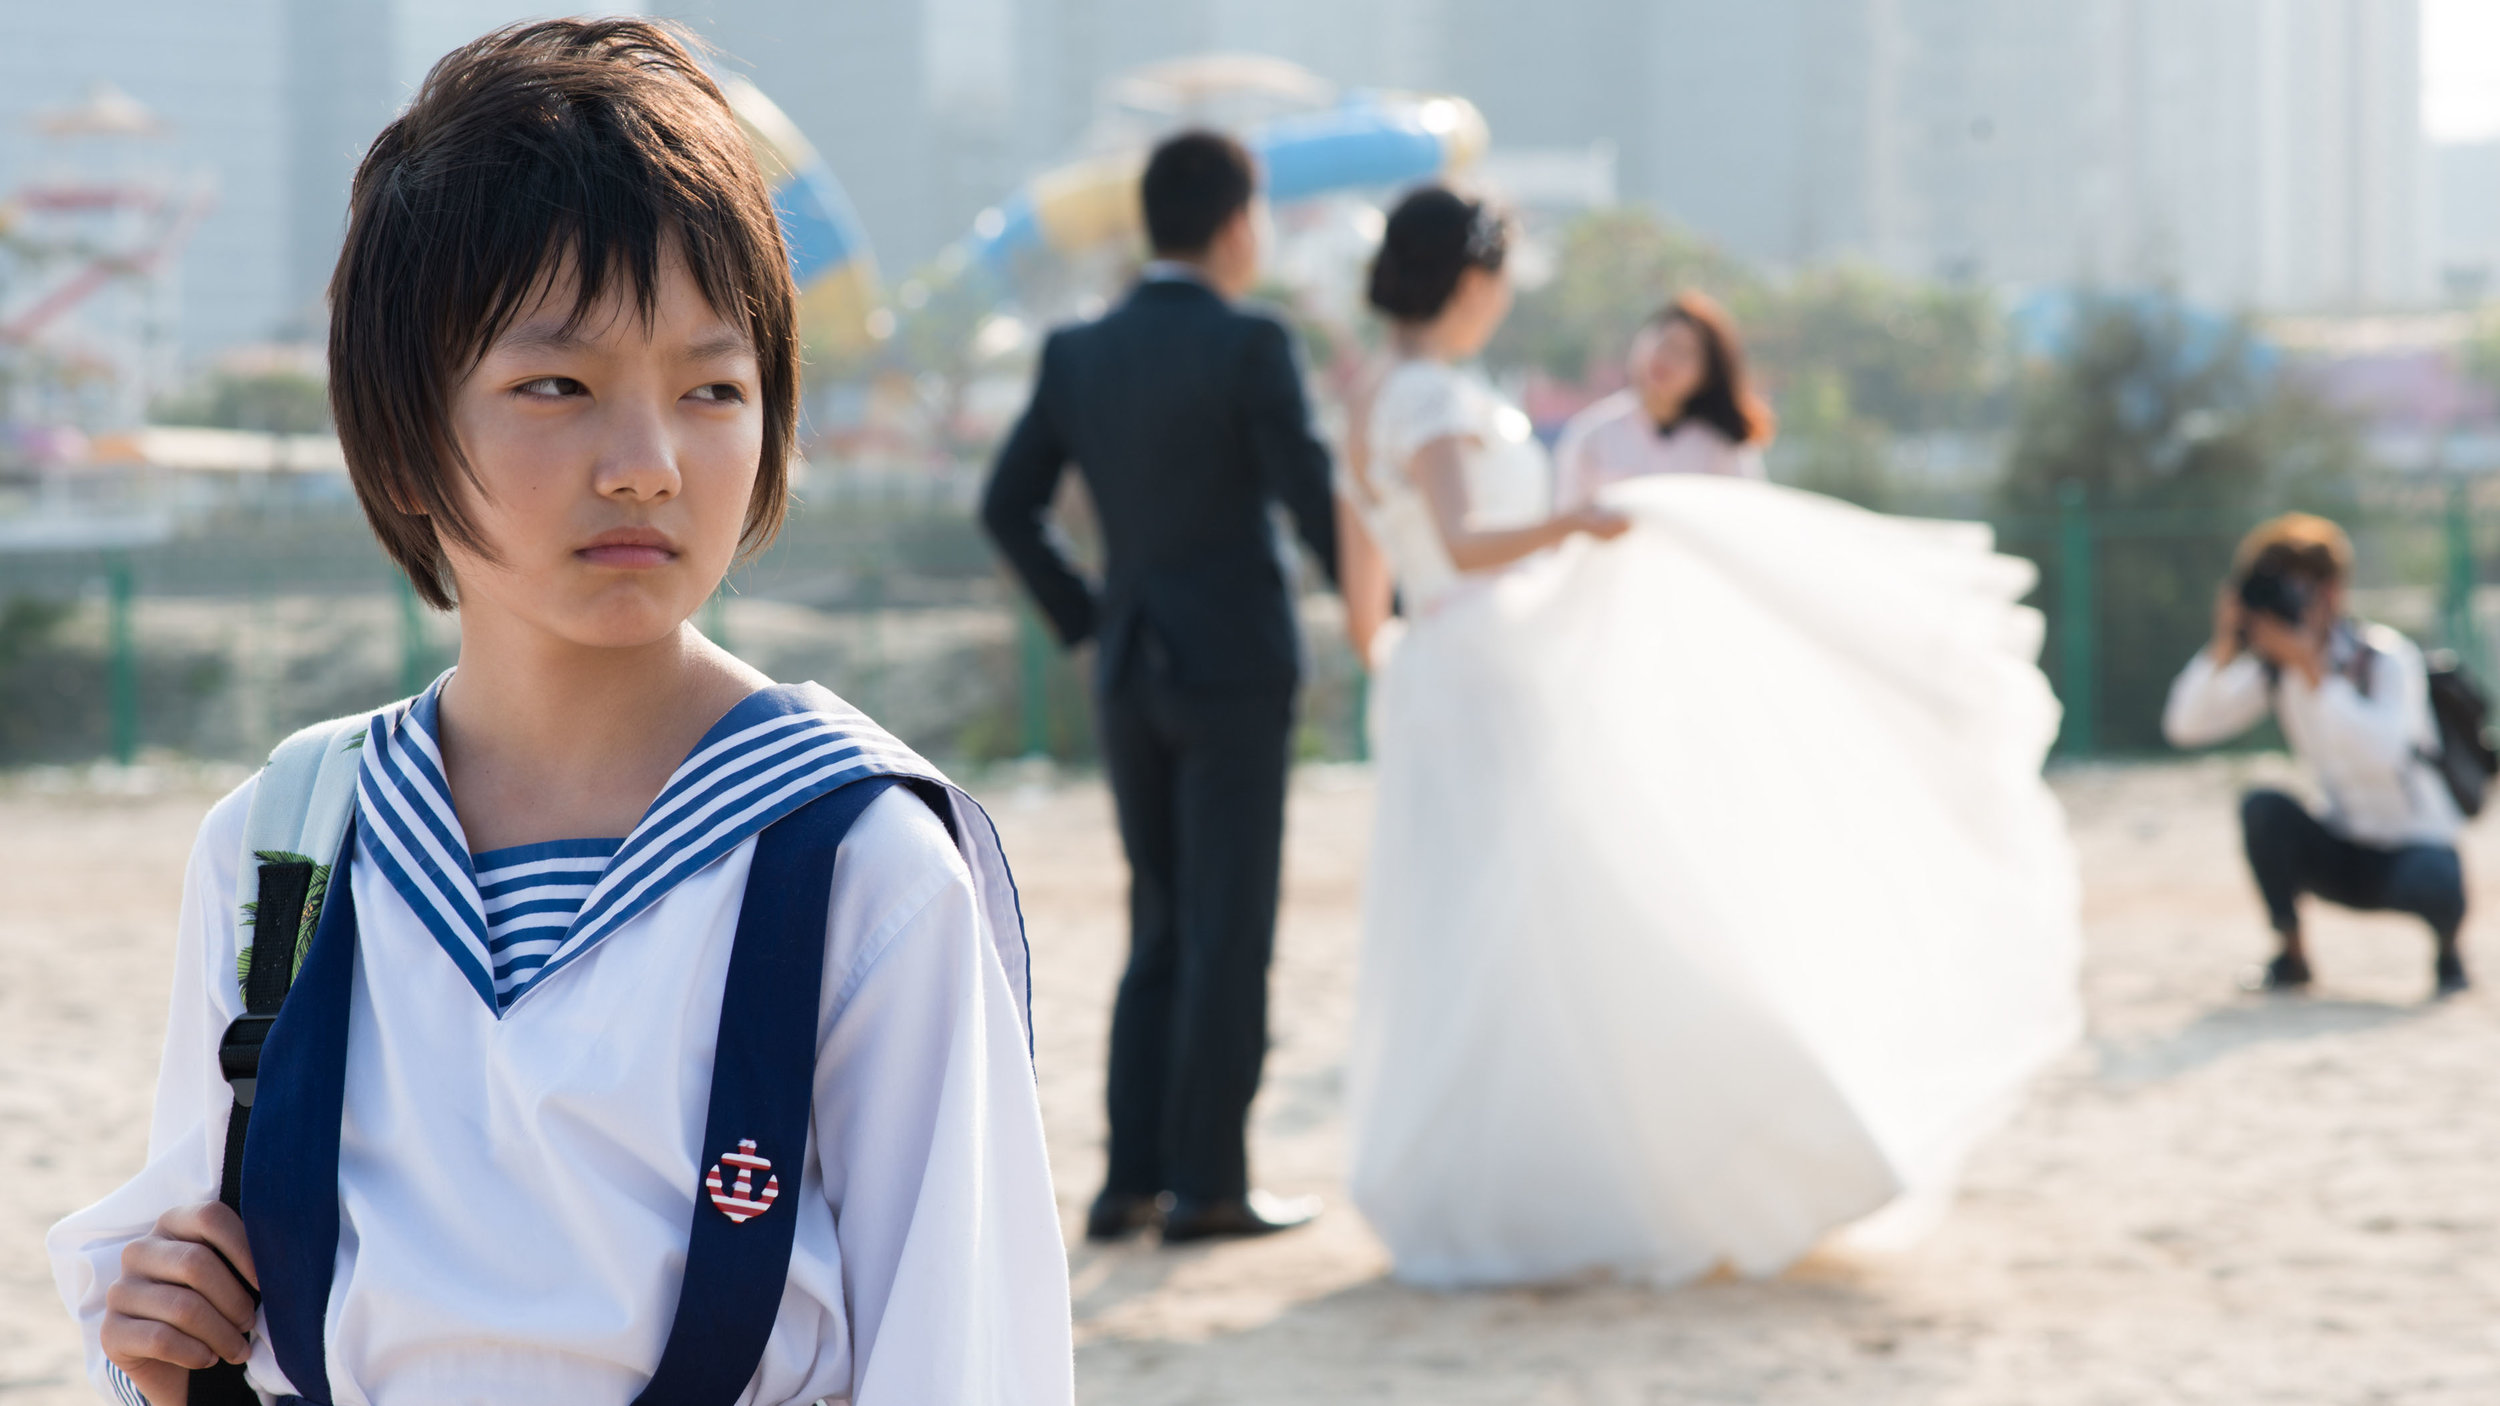 Traumatized Wen (Meijun Zhou) surrounded by happy tourists taking romantic wedding pictures on the beach.